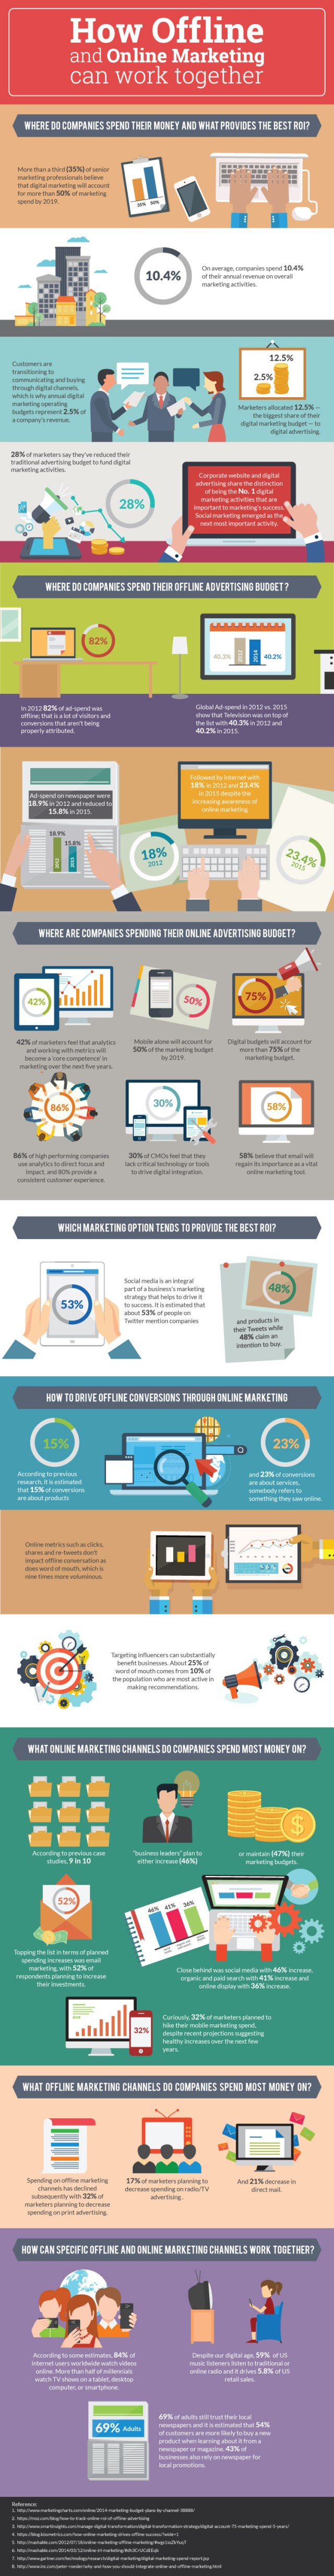 how offline and online marketing can work together.jpg